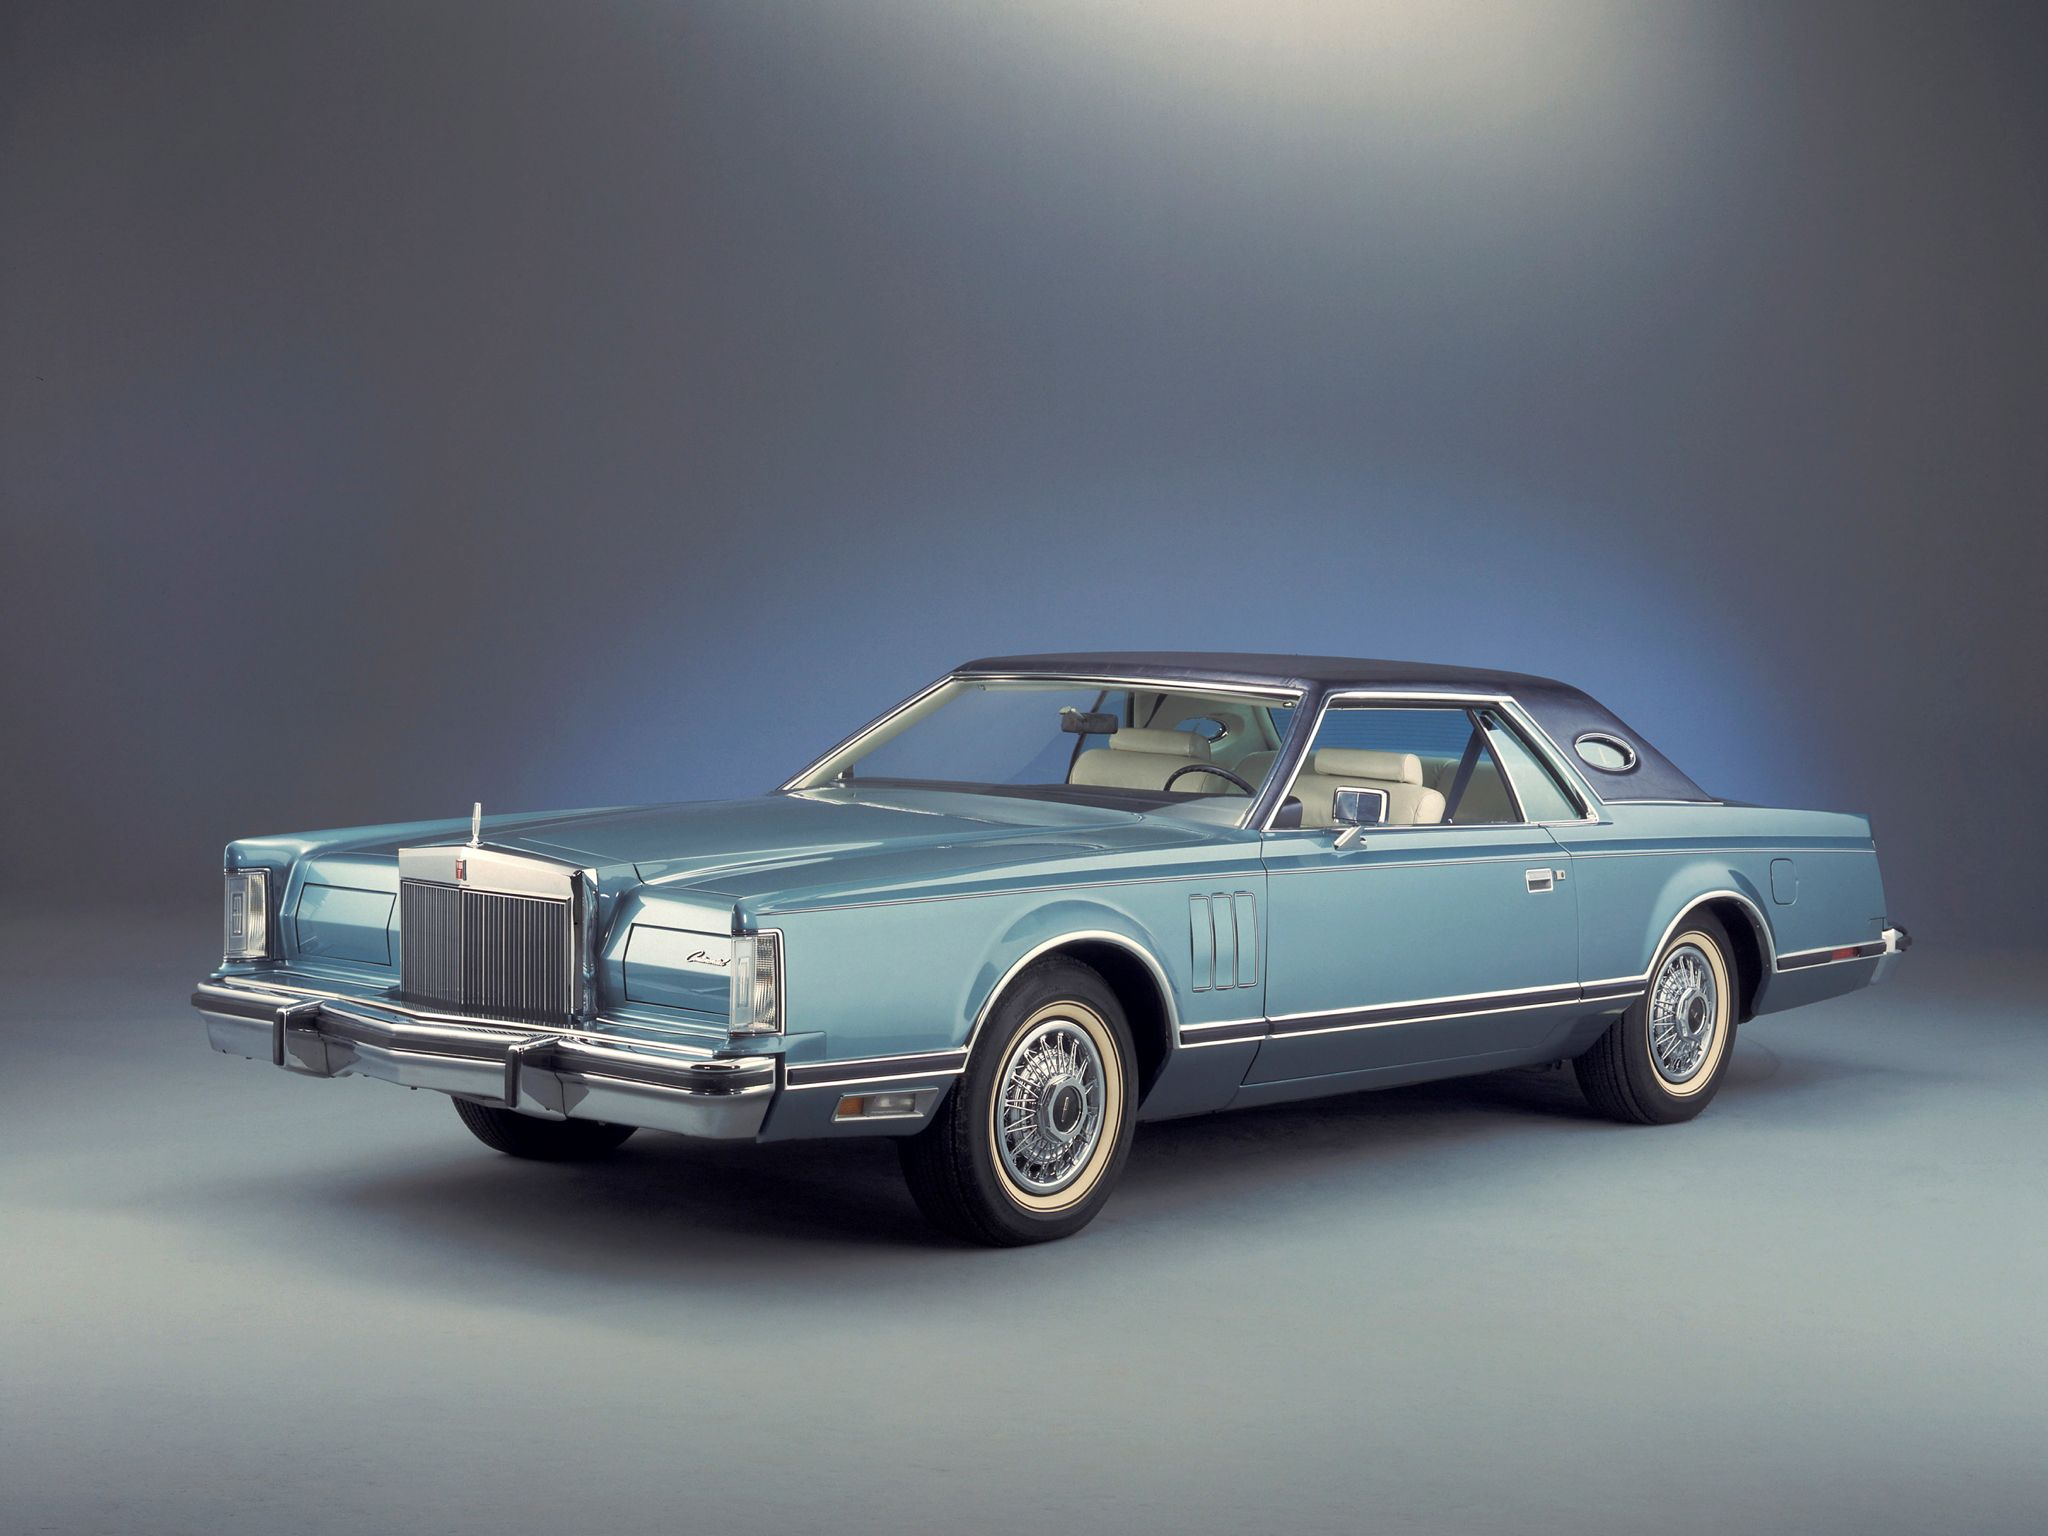 376 best lincoln motor company images on pinterest lincoln continental vintage cars and cars motorcycles